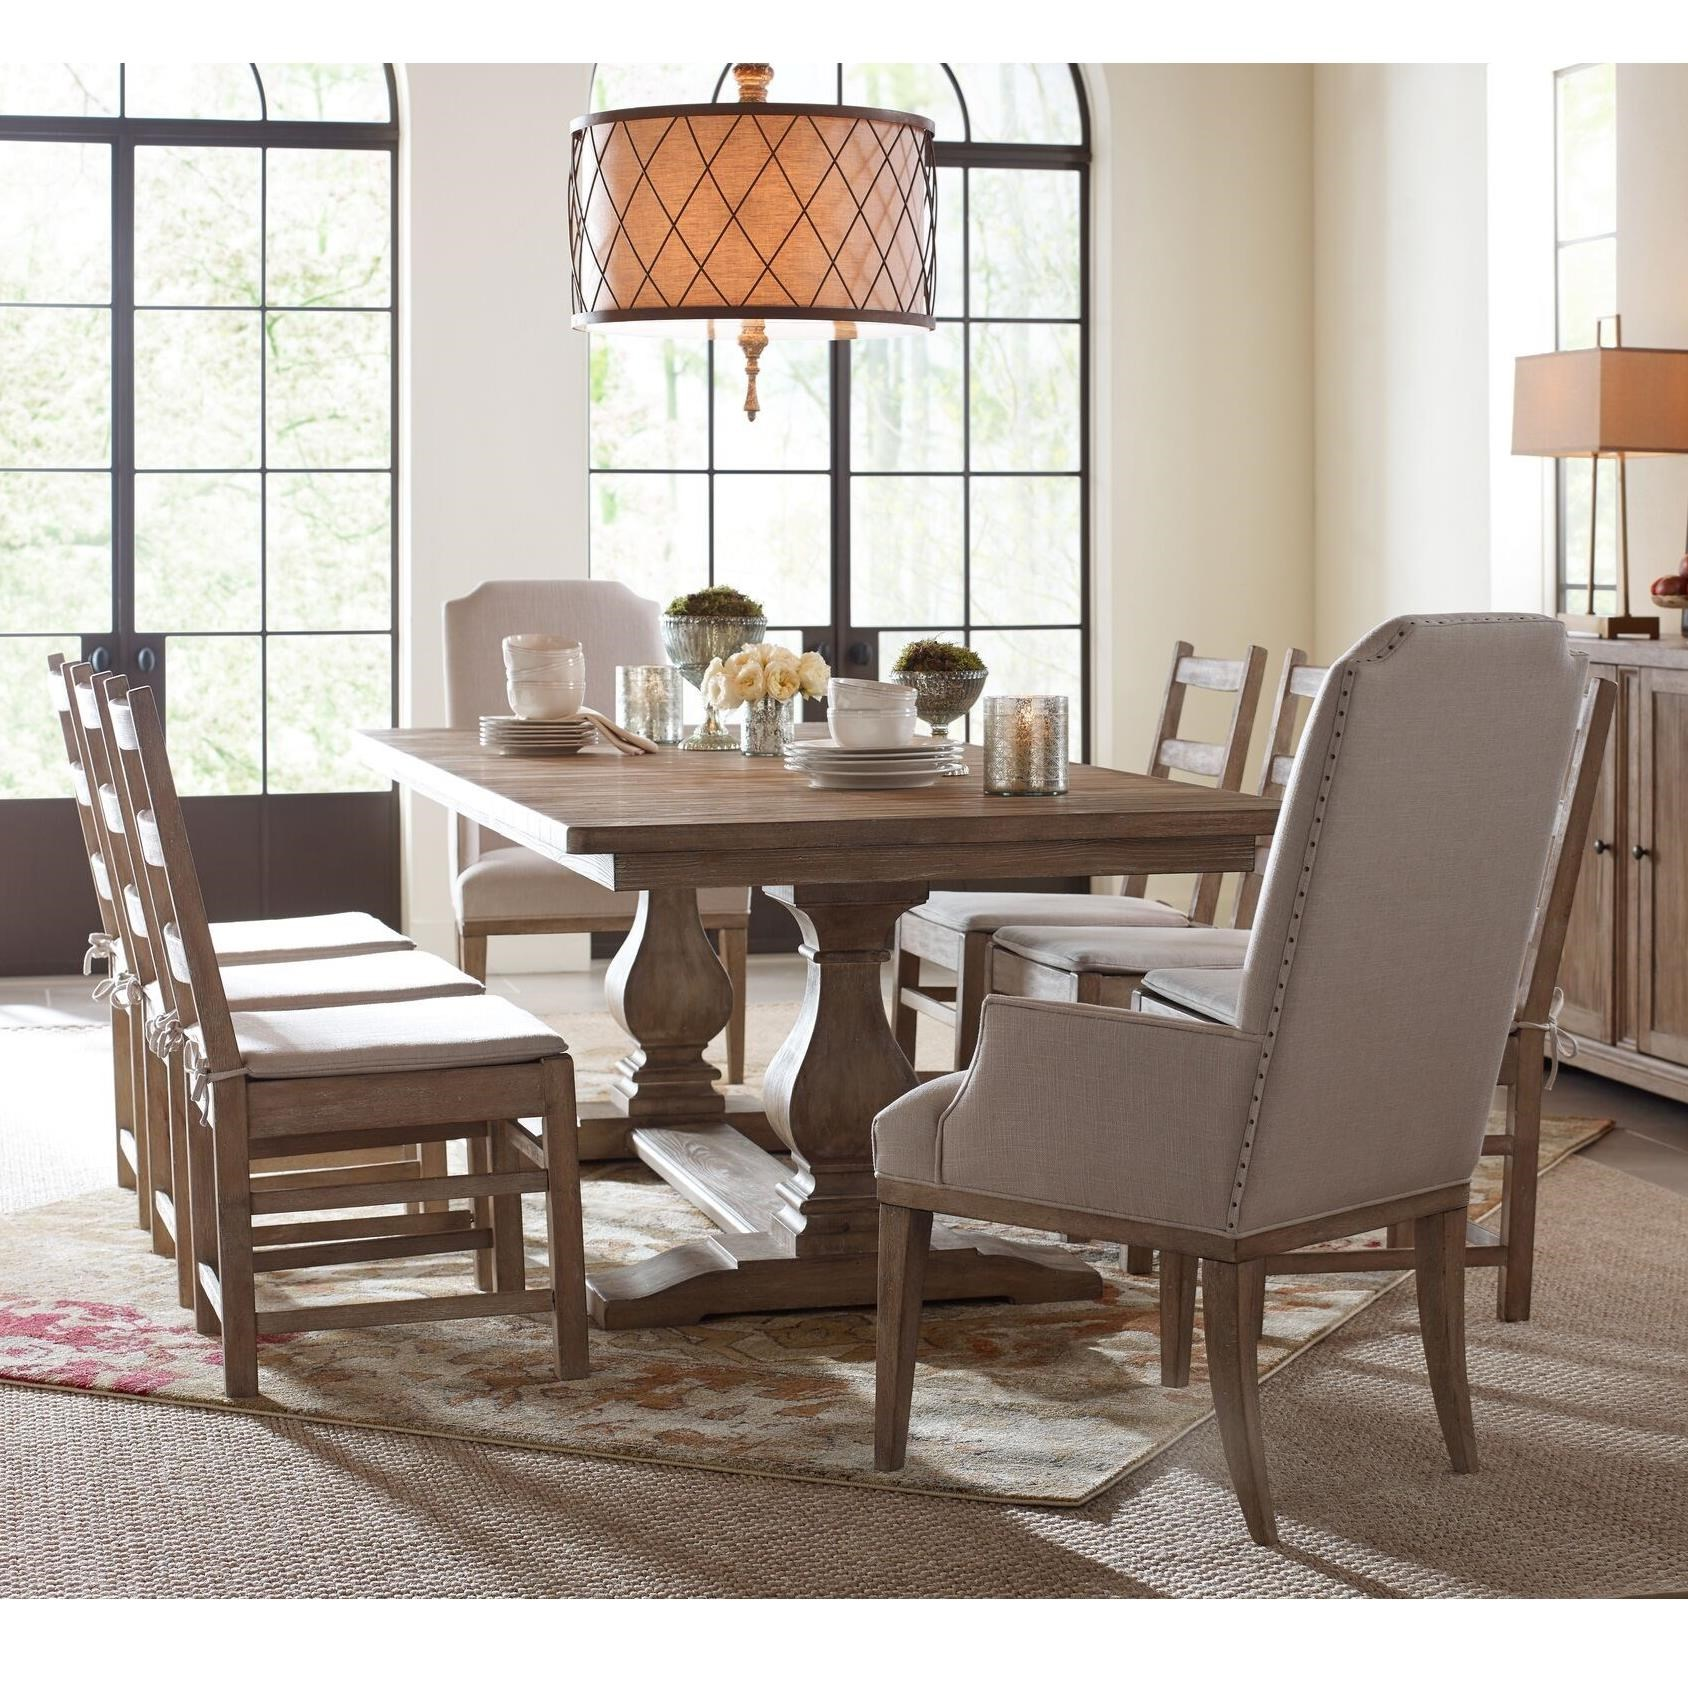 Monteverdi  9 Piece Rectangular Table Set by Rachael Ray Home by Legacy Classic at Fashion Furniture